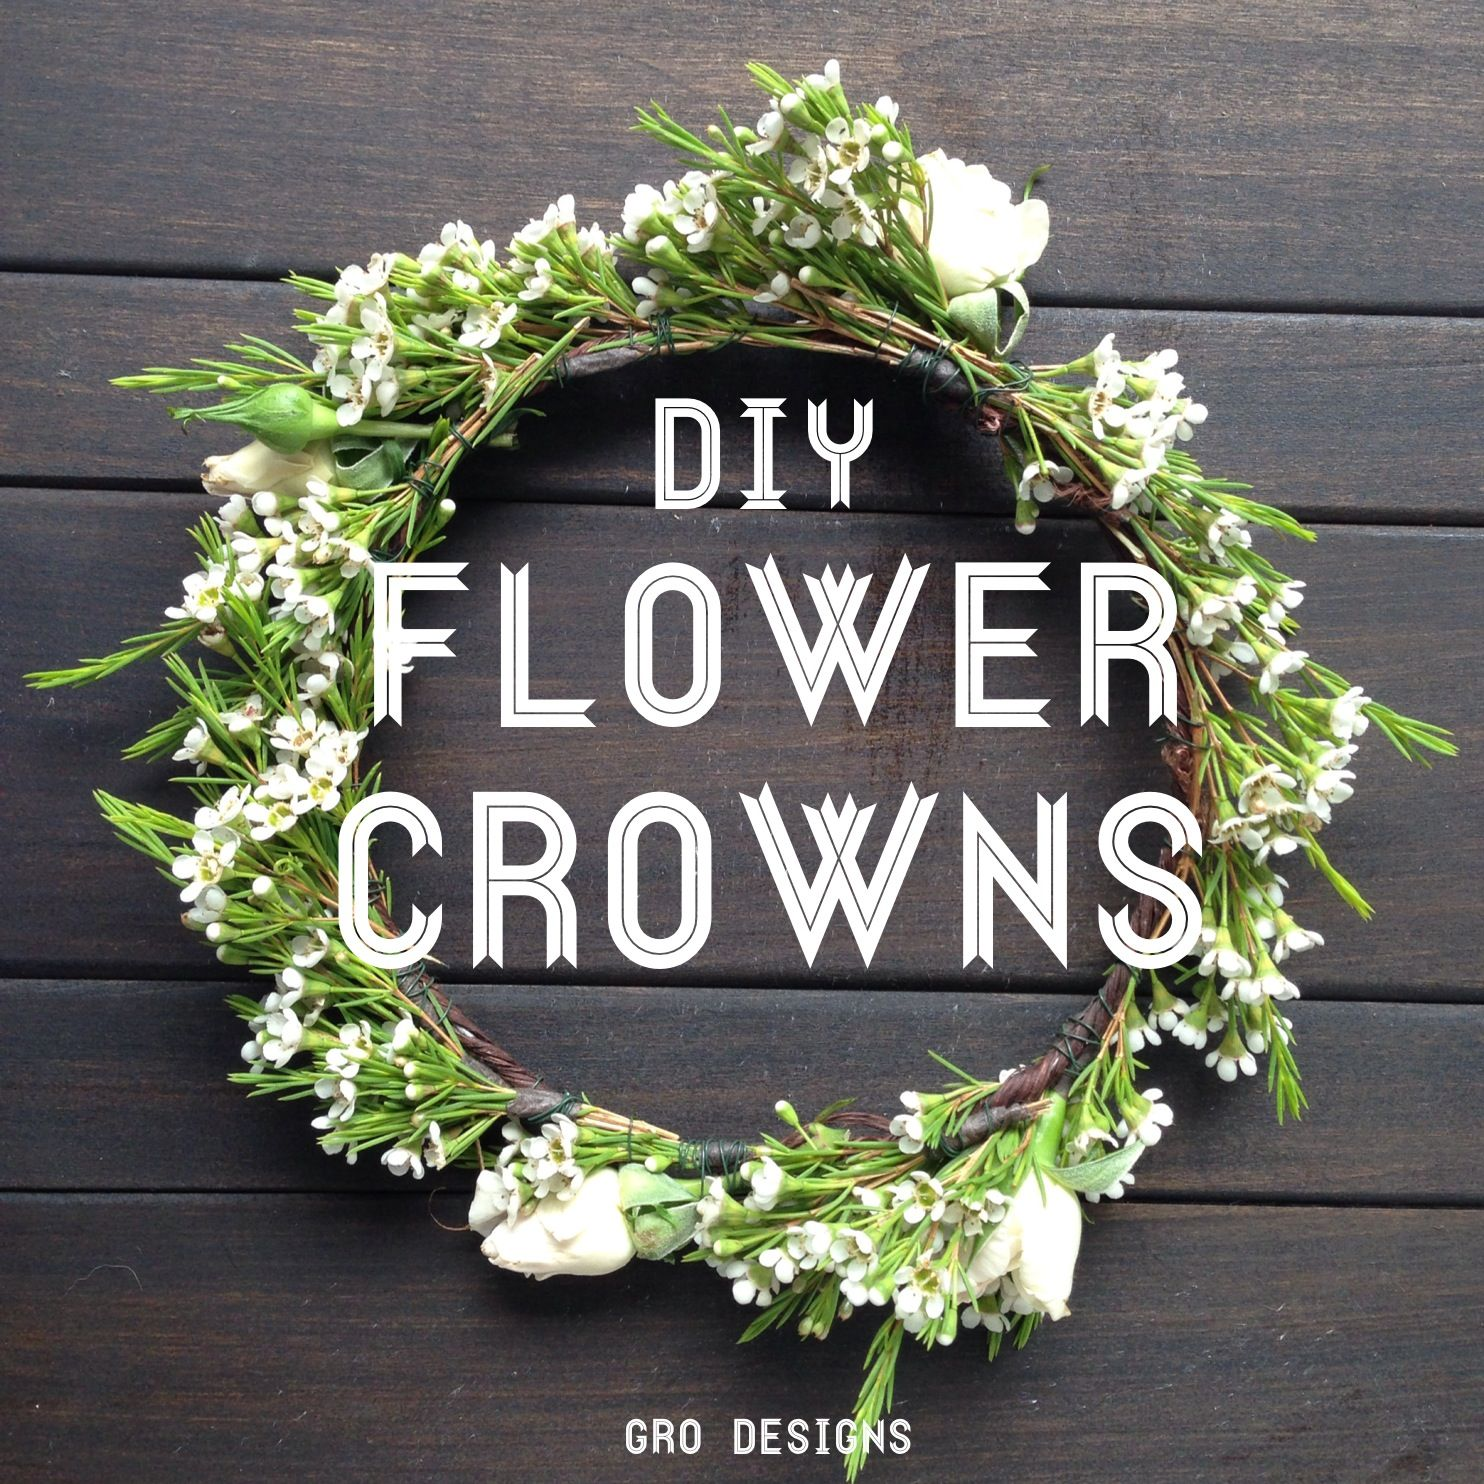 Gro floral and event design diy flower crowns awaken your inner gro floral and event design diy flower crowns awaken your inner flower child izmirmasajfo